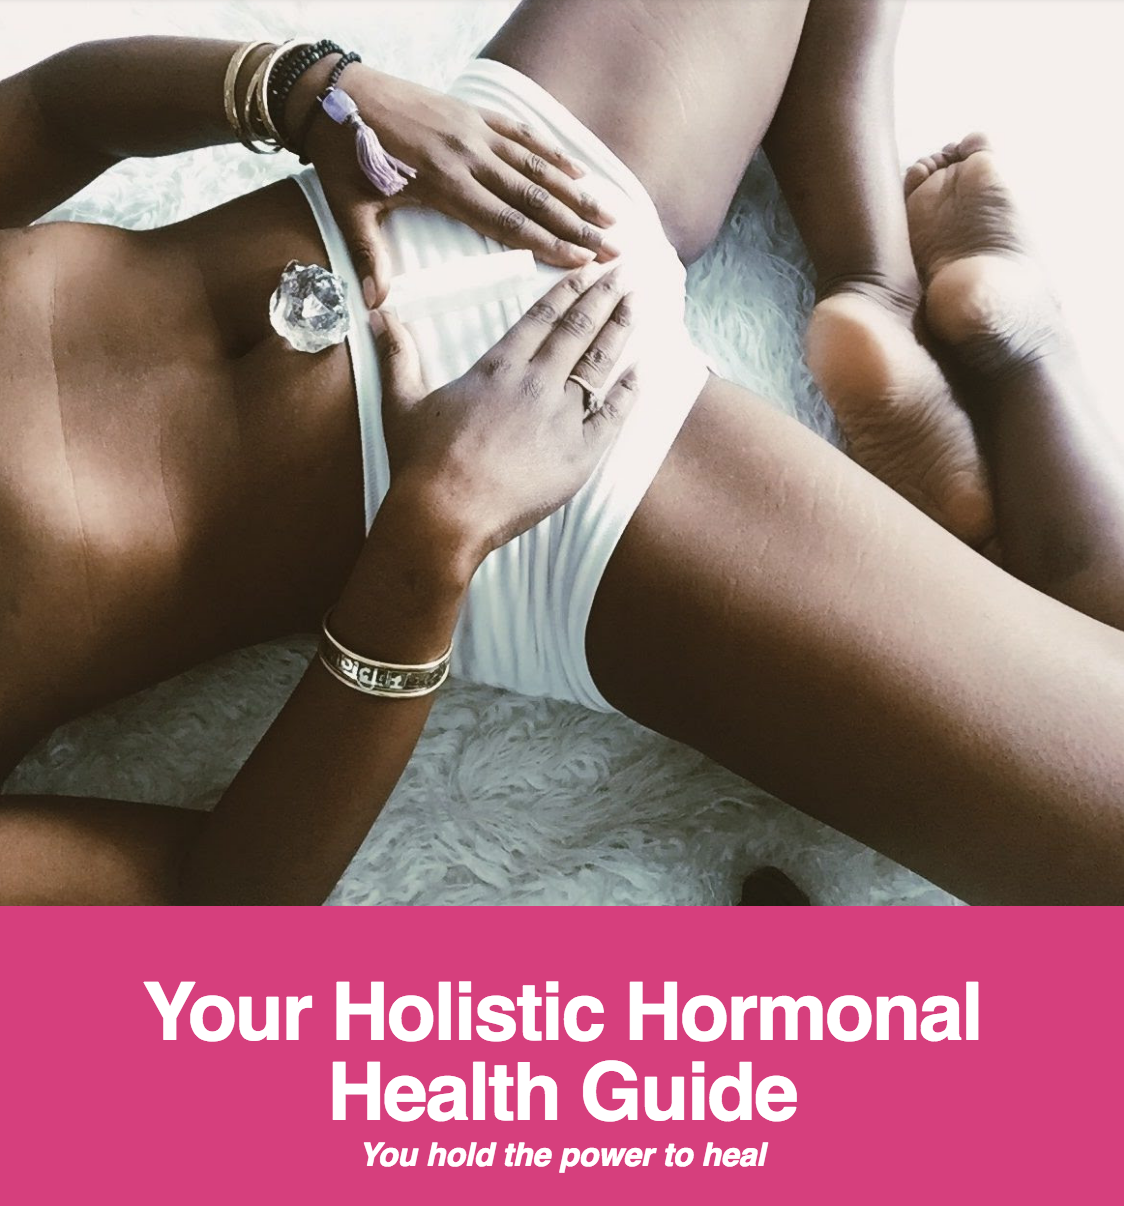 Get your Free Hormonal Health Guide now! - Heal Adrenal Fatigue, Reverse Autoimmune dis-ease into Ease and Ignite your Femme Fertility and Fire!